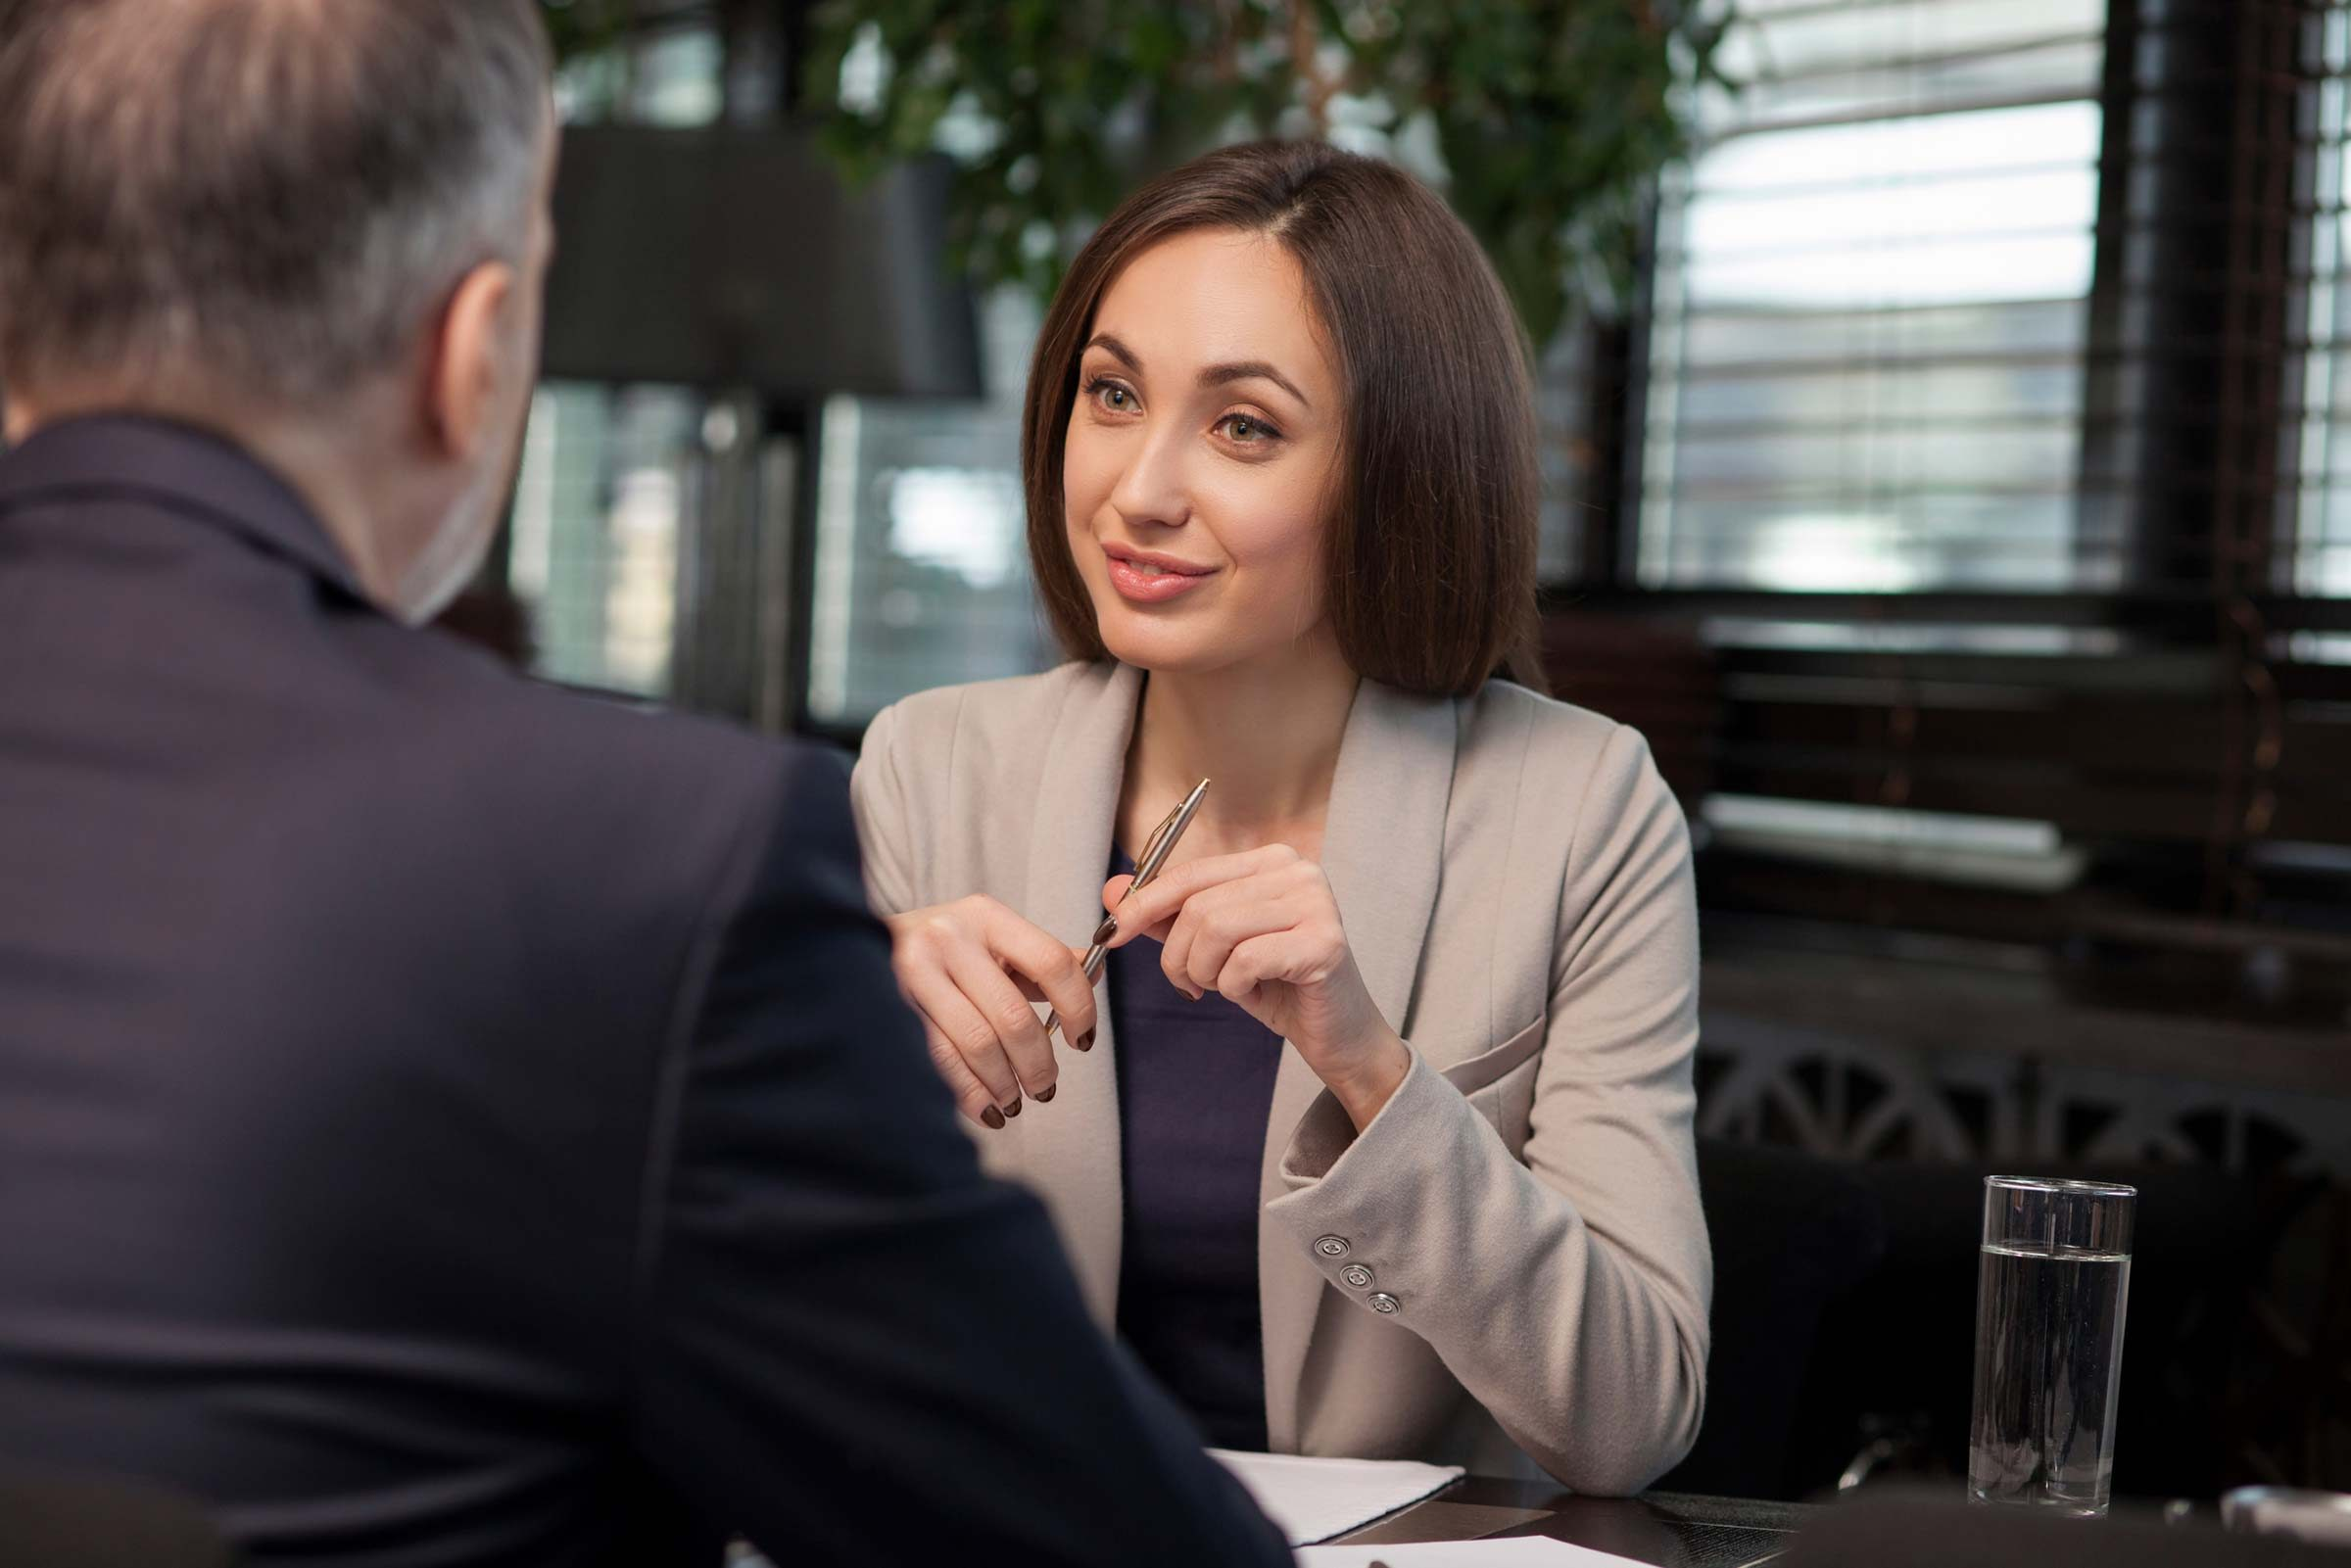 questions to ask at job interview